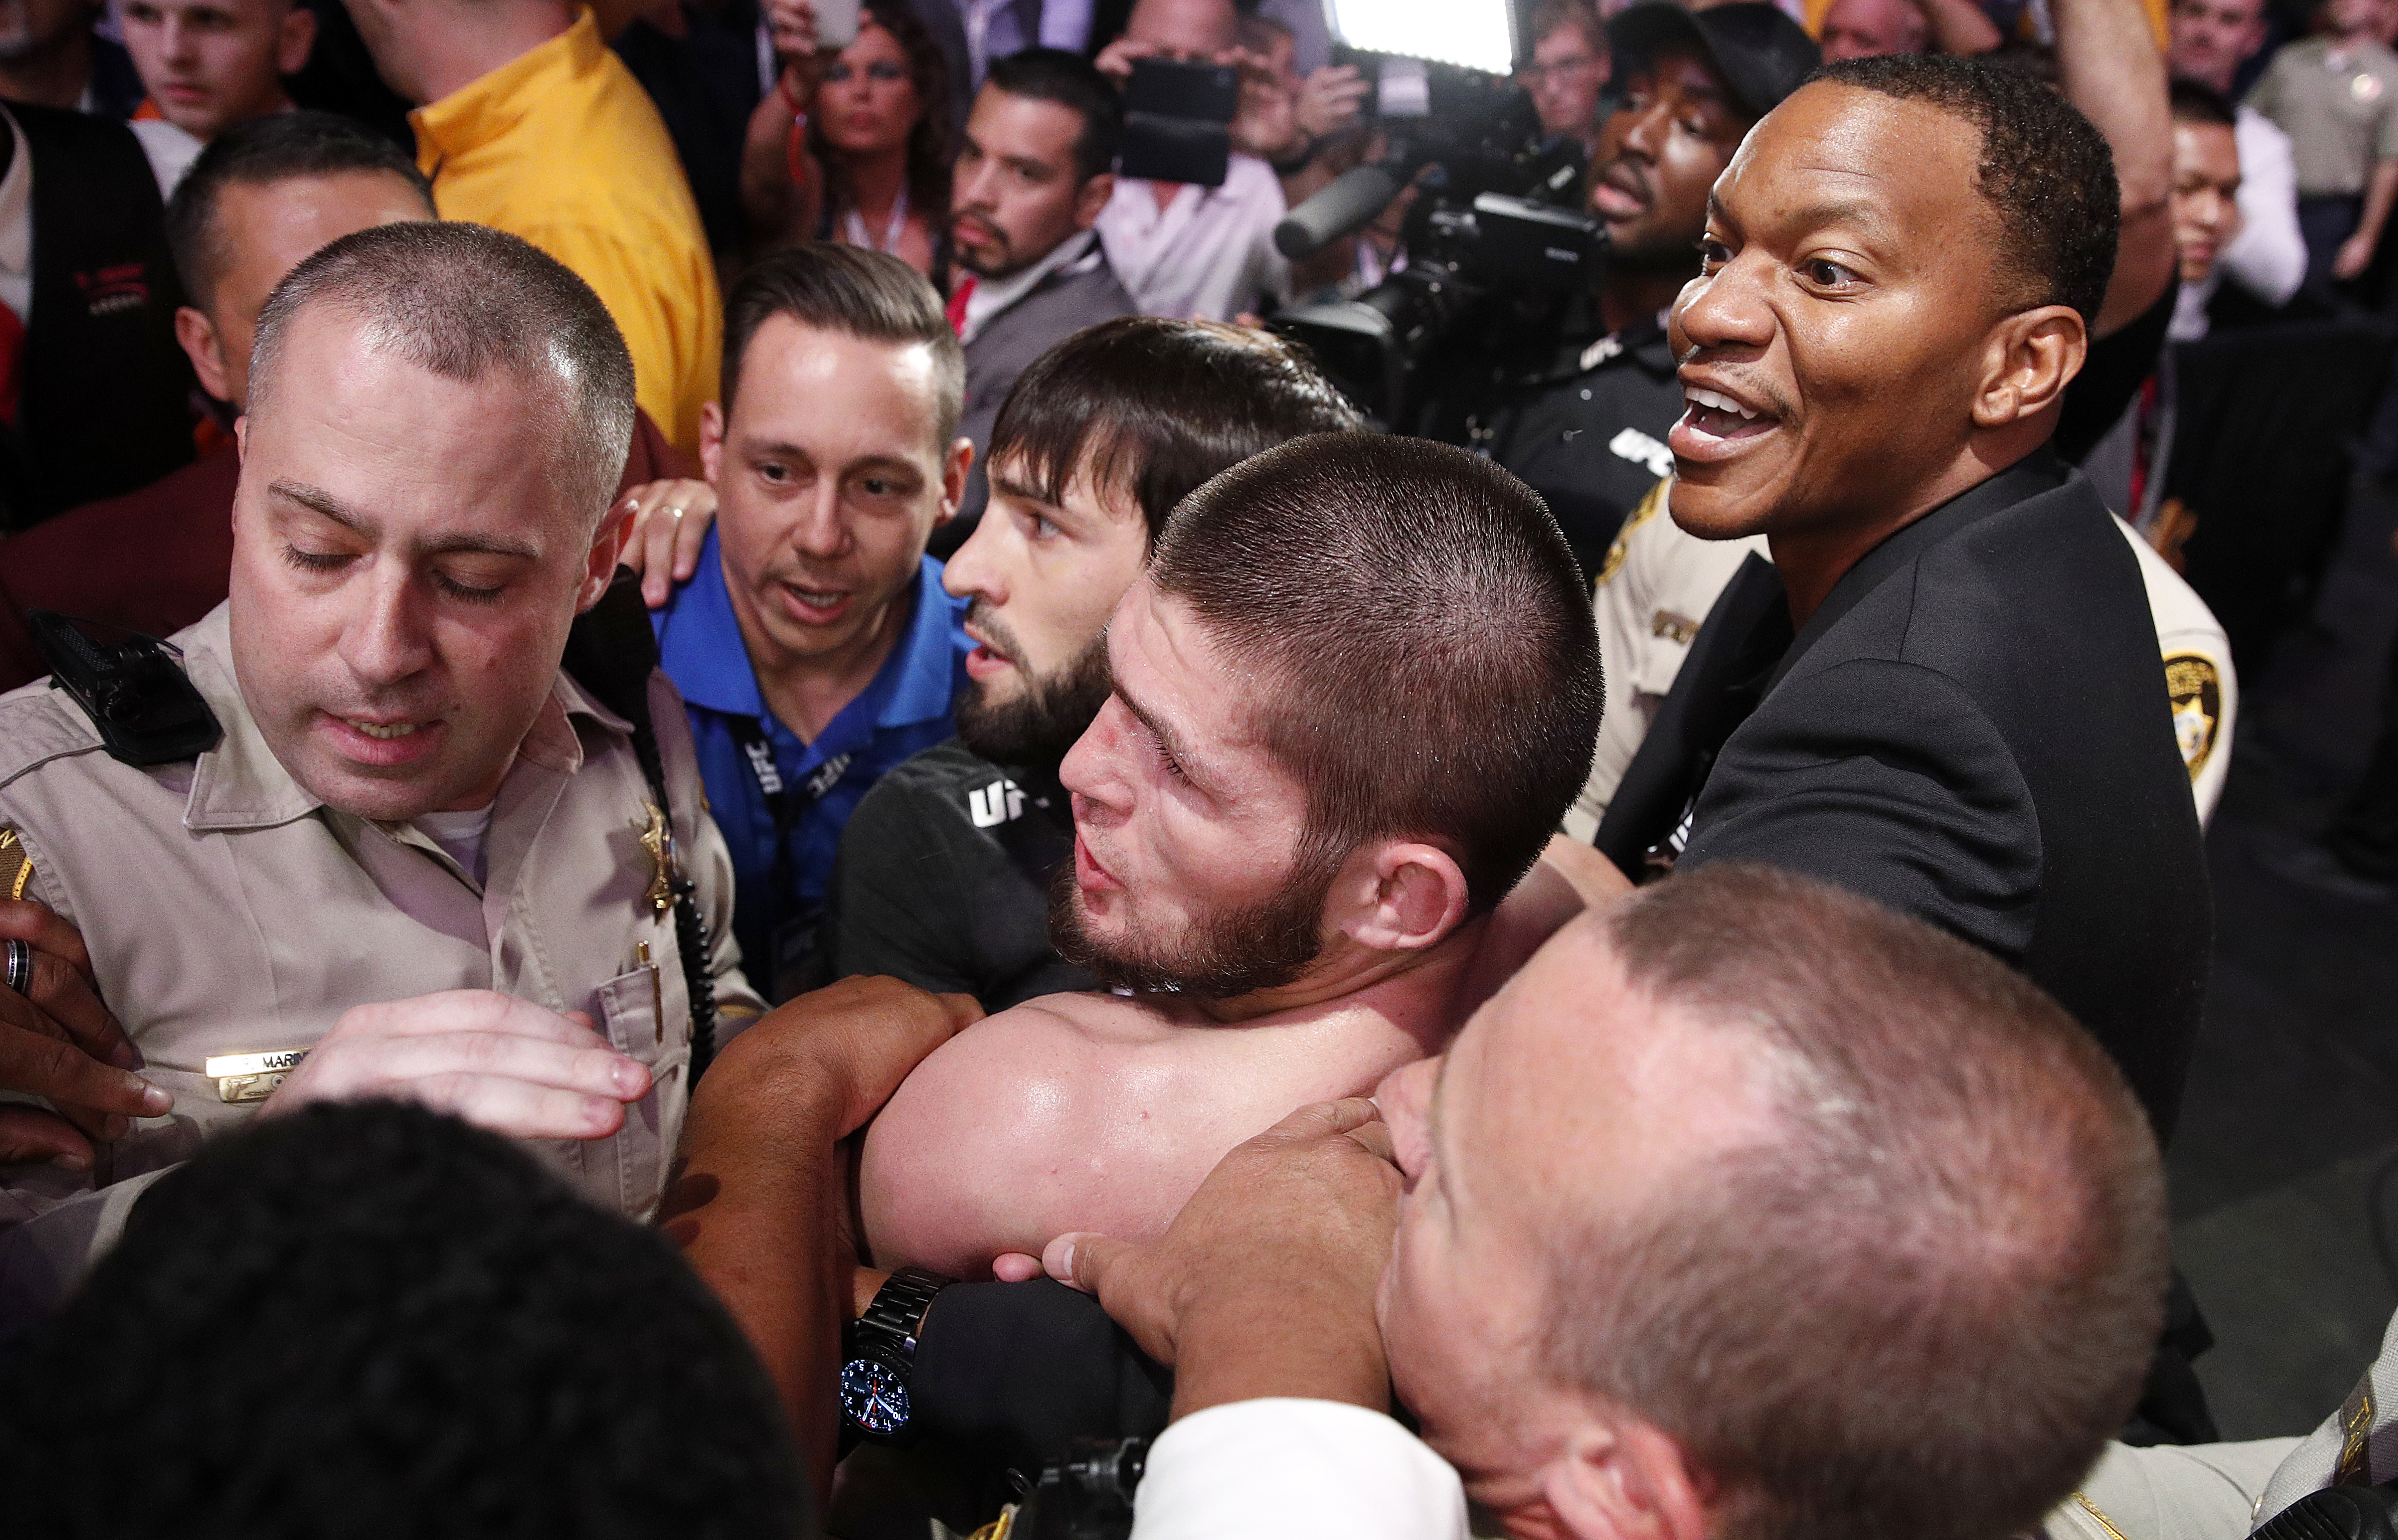 Security hold back Khabib after the incident. Image: PA Images